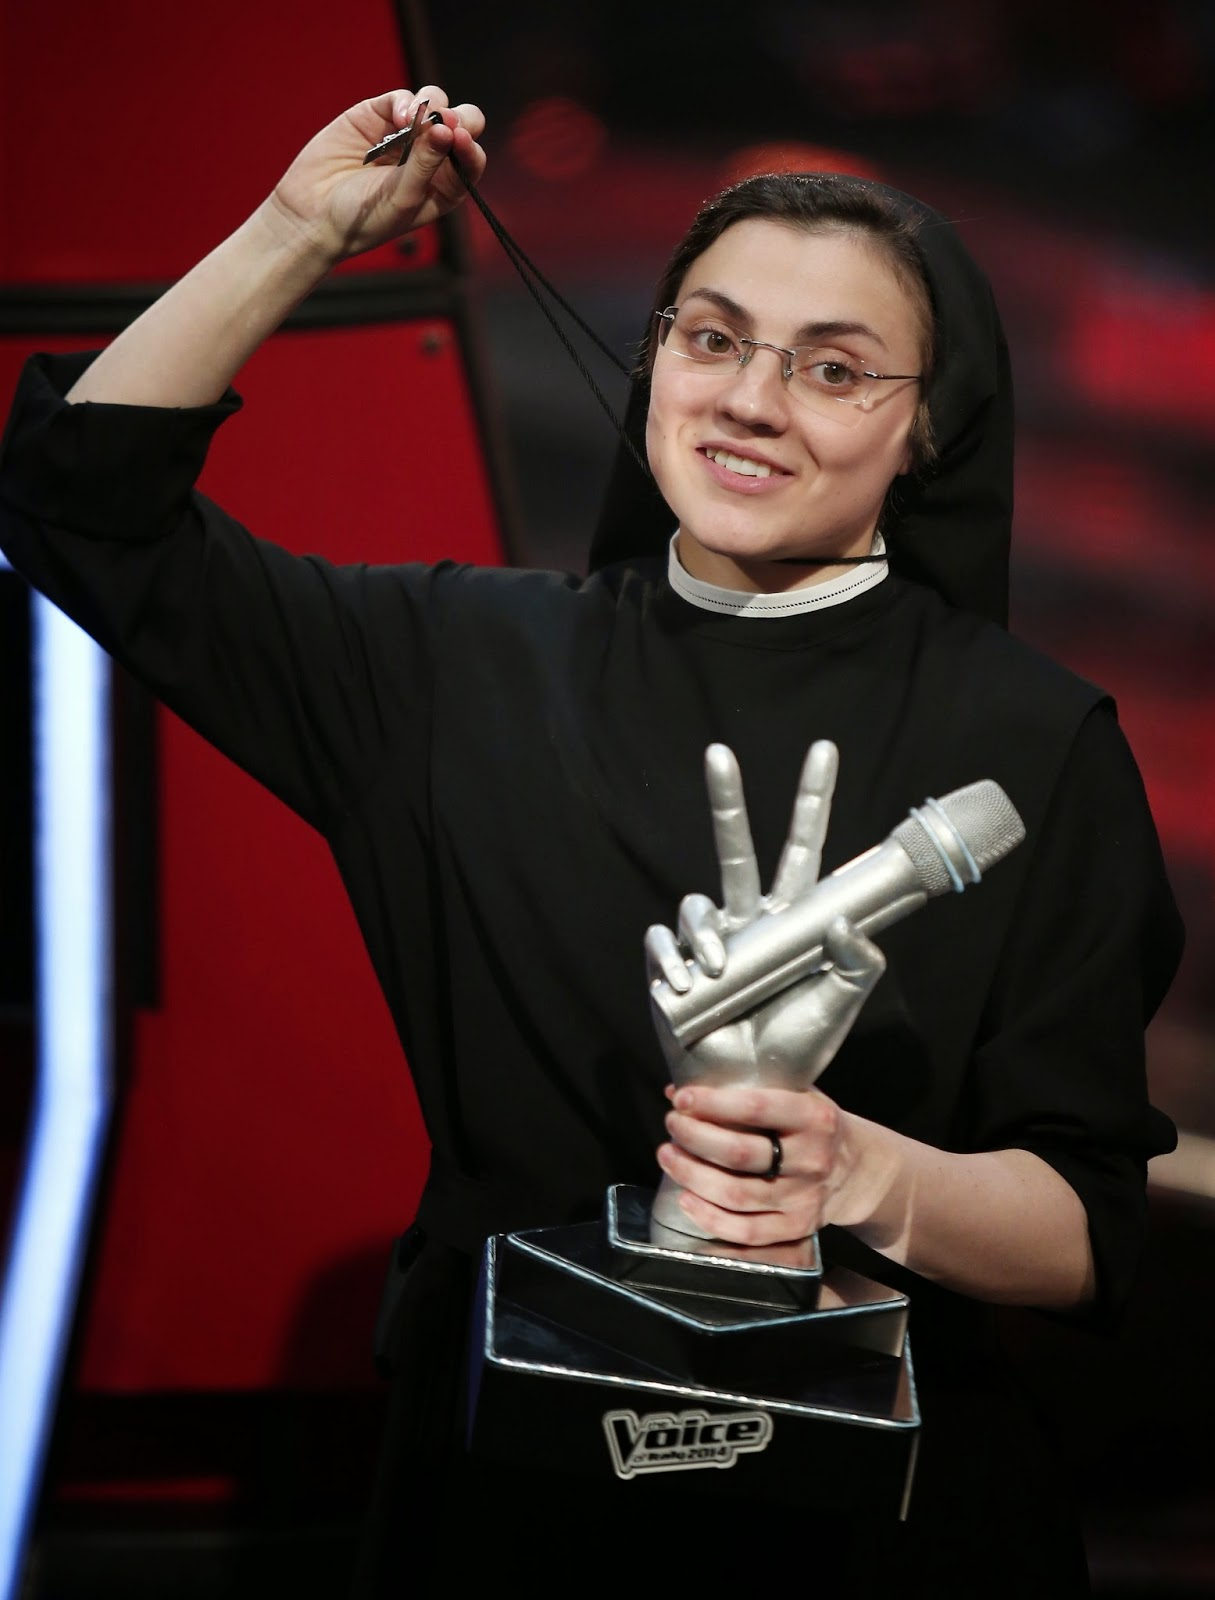 The Voice Sister Cristina Scuccia